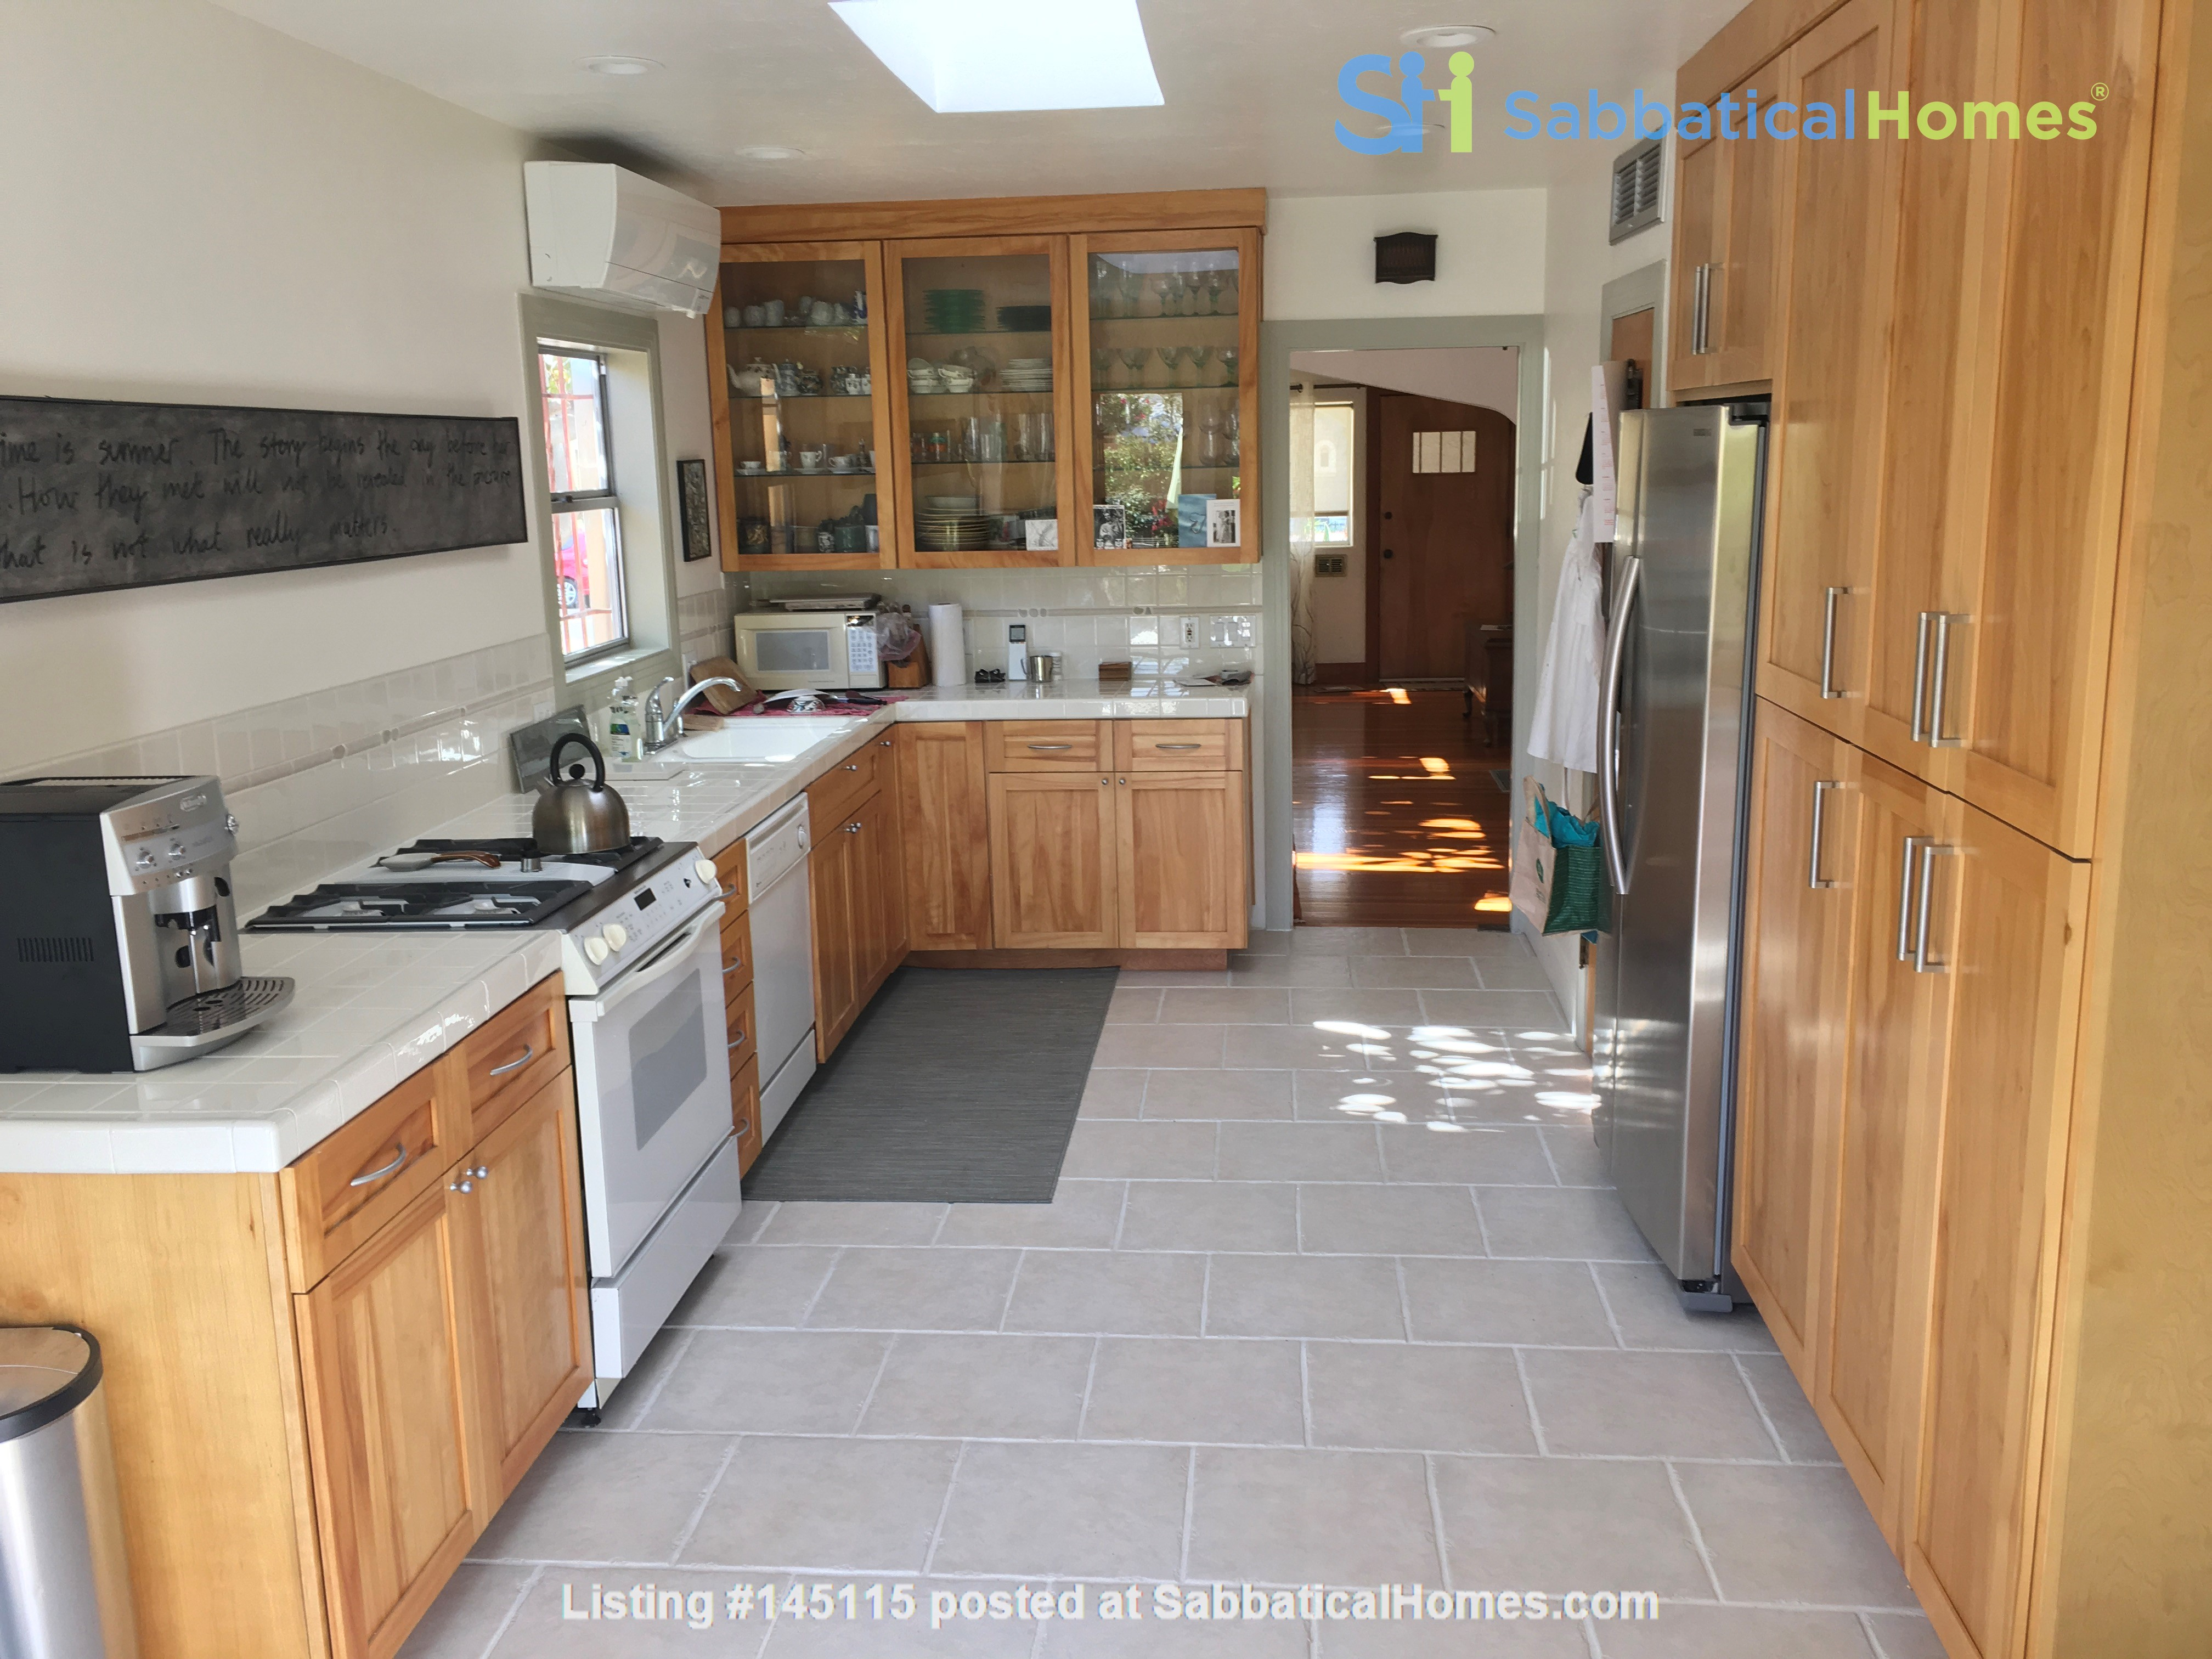 Quiet home for academic or visiting artist Home Rental in San Diego, California, United States 3